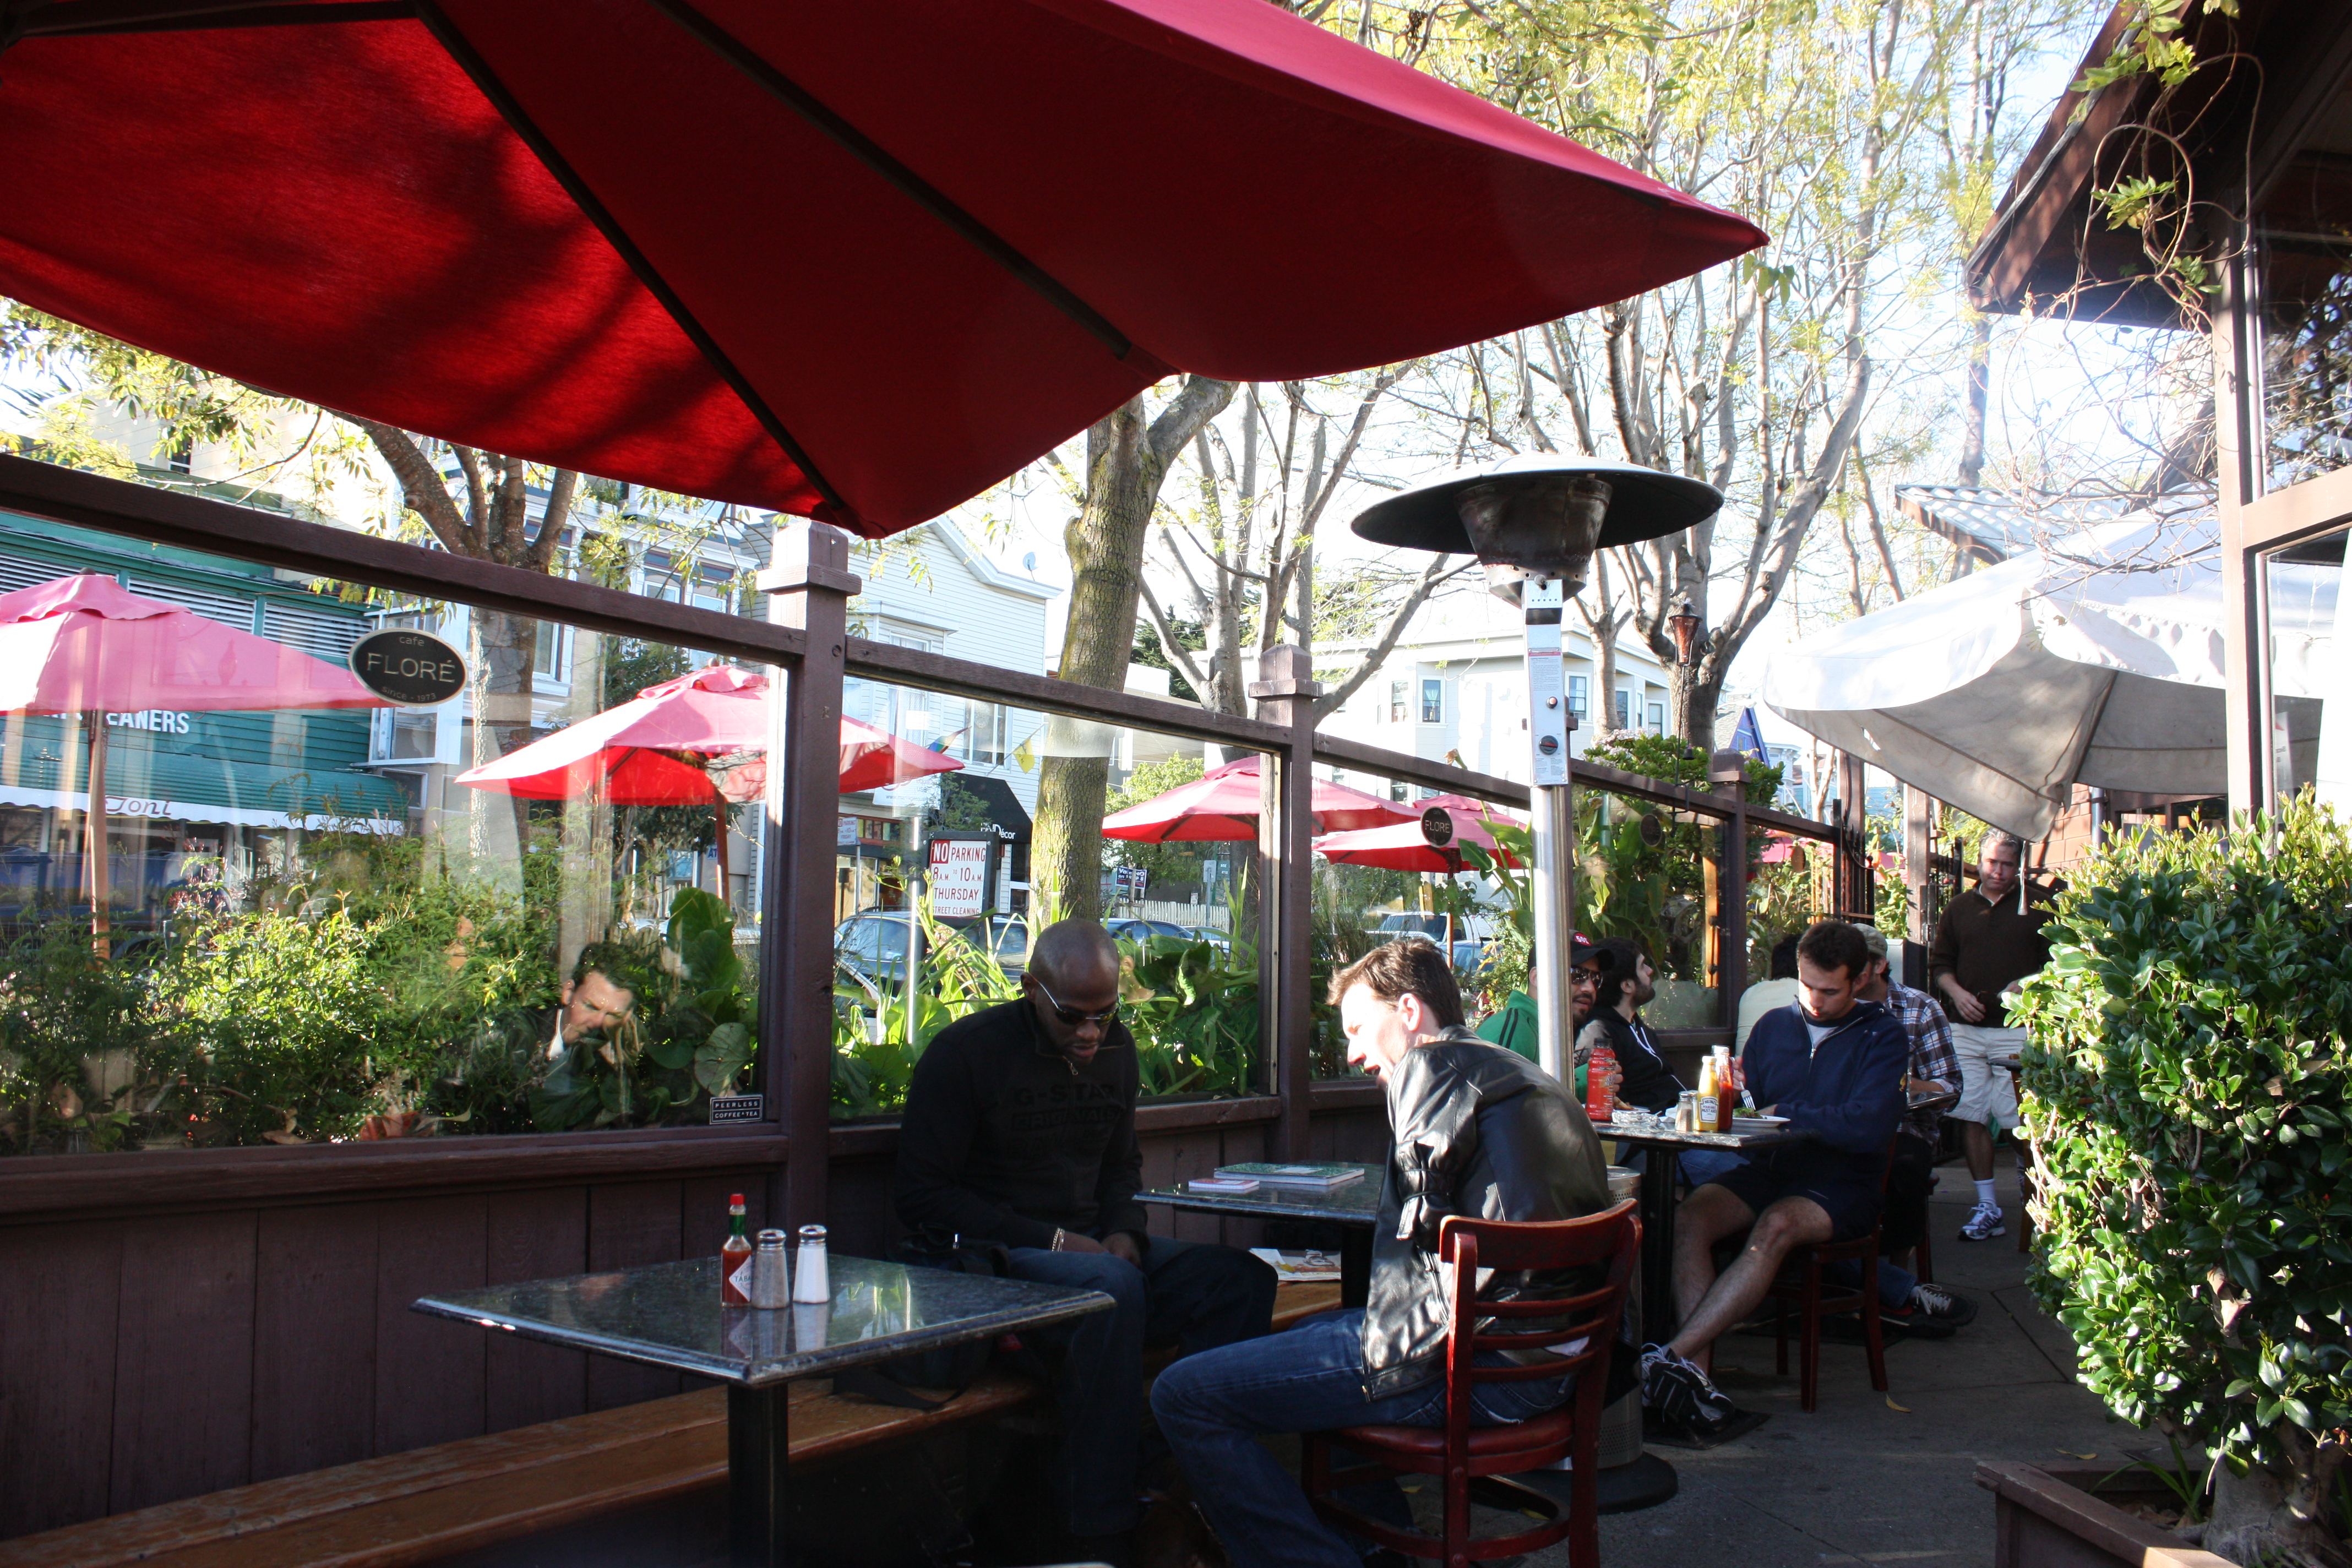 File:Cafe Flore heated outdoor patio 2009.jpg - Wikimedia Commons